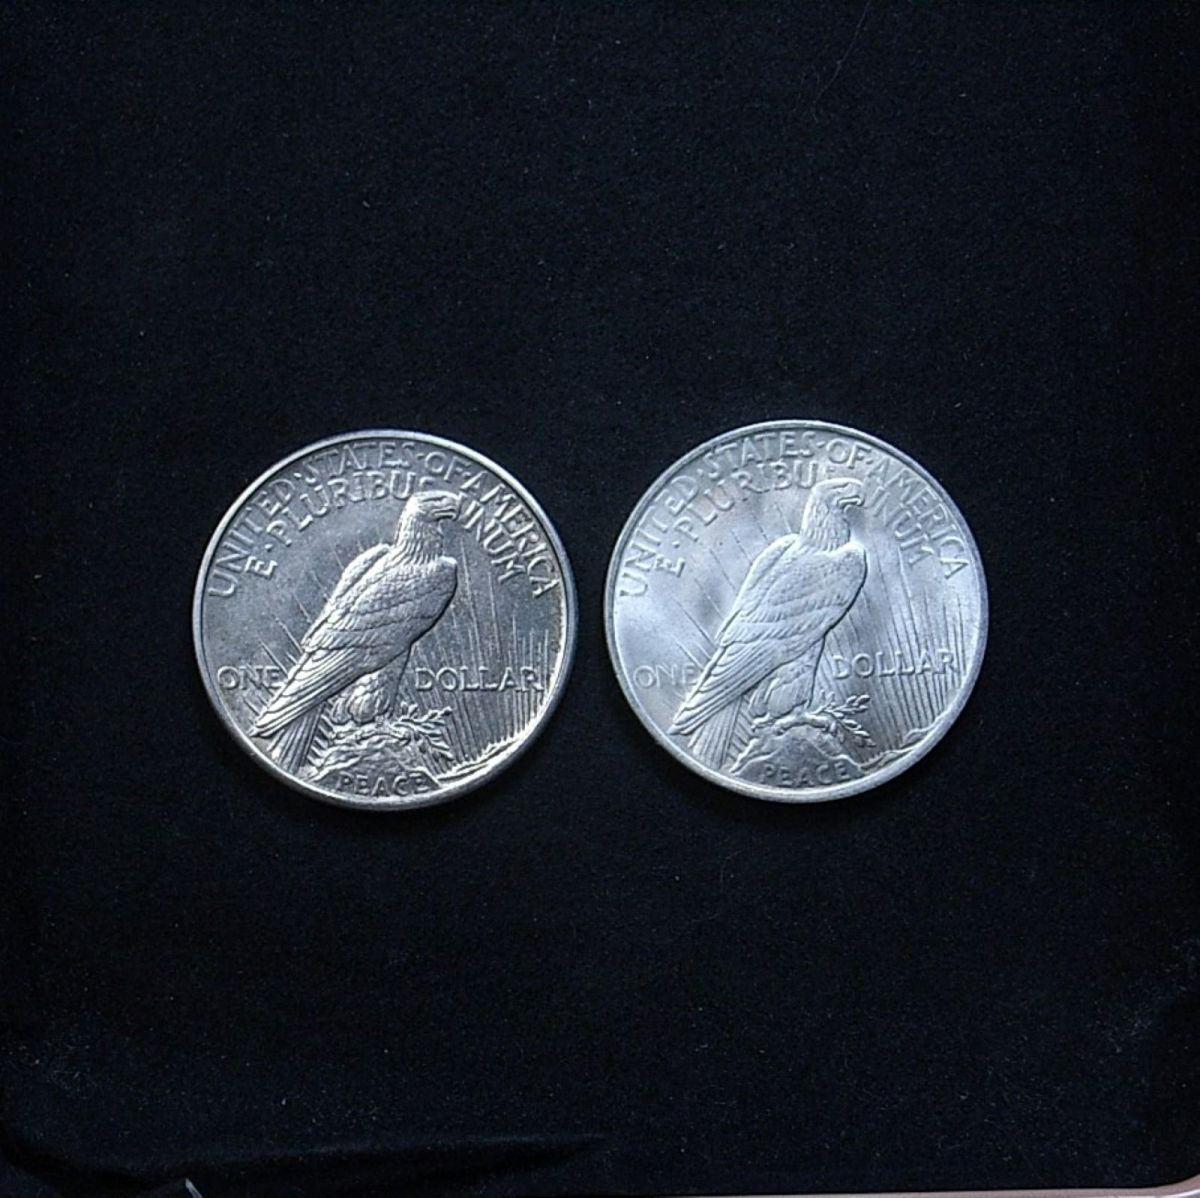 Comparison of relief on US 1921 vs 1923 Peace dollar reverse, highlighting lustre on the coins